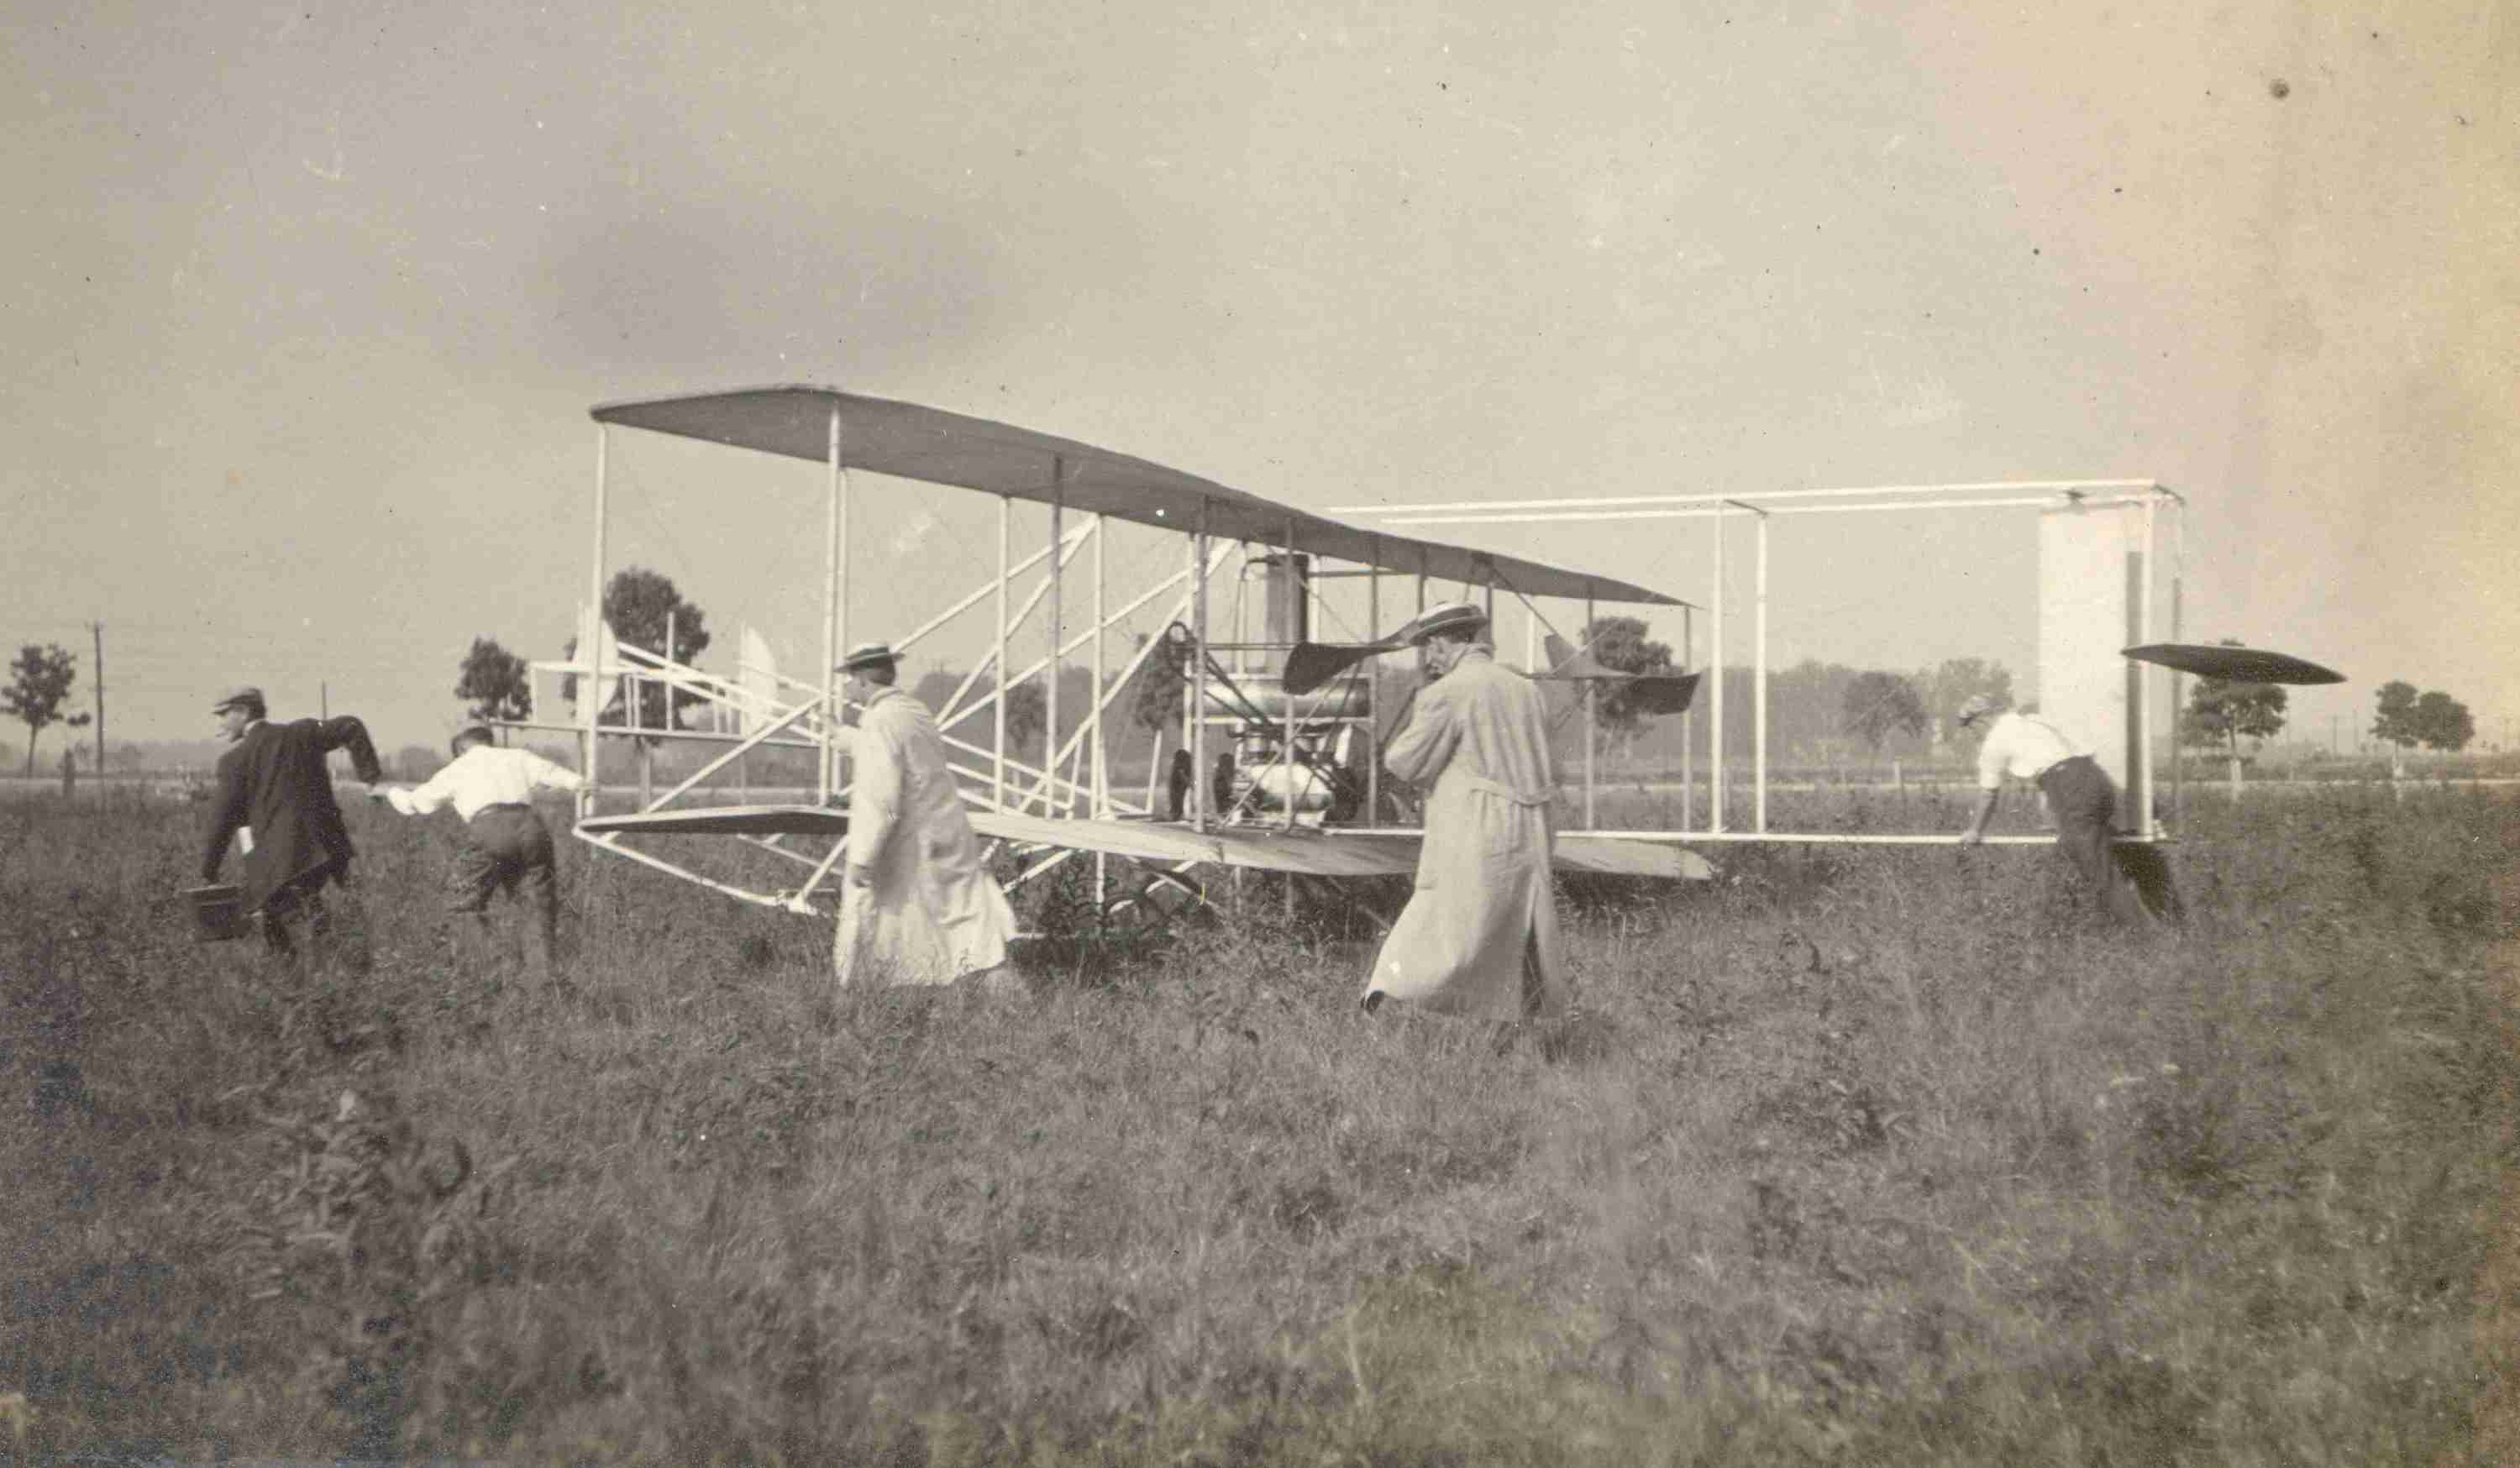 Students moving Wright B flyer at Huffman Prairie Flying Field